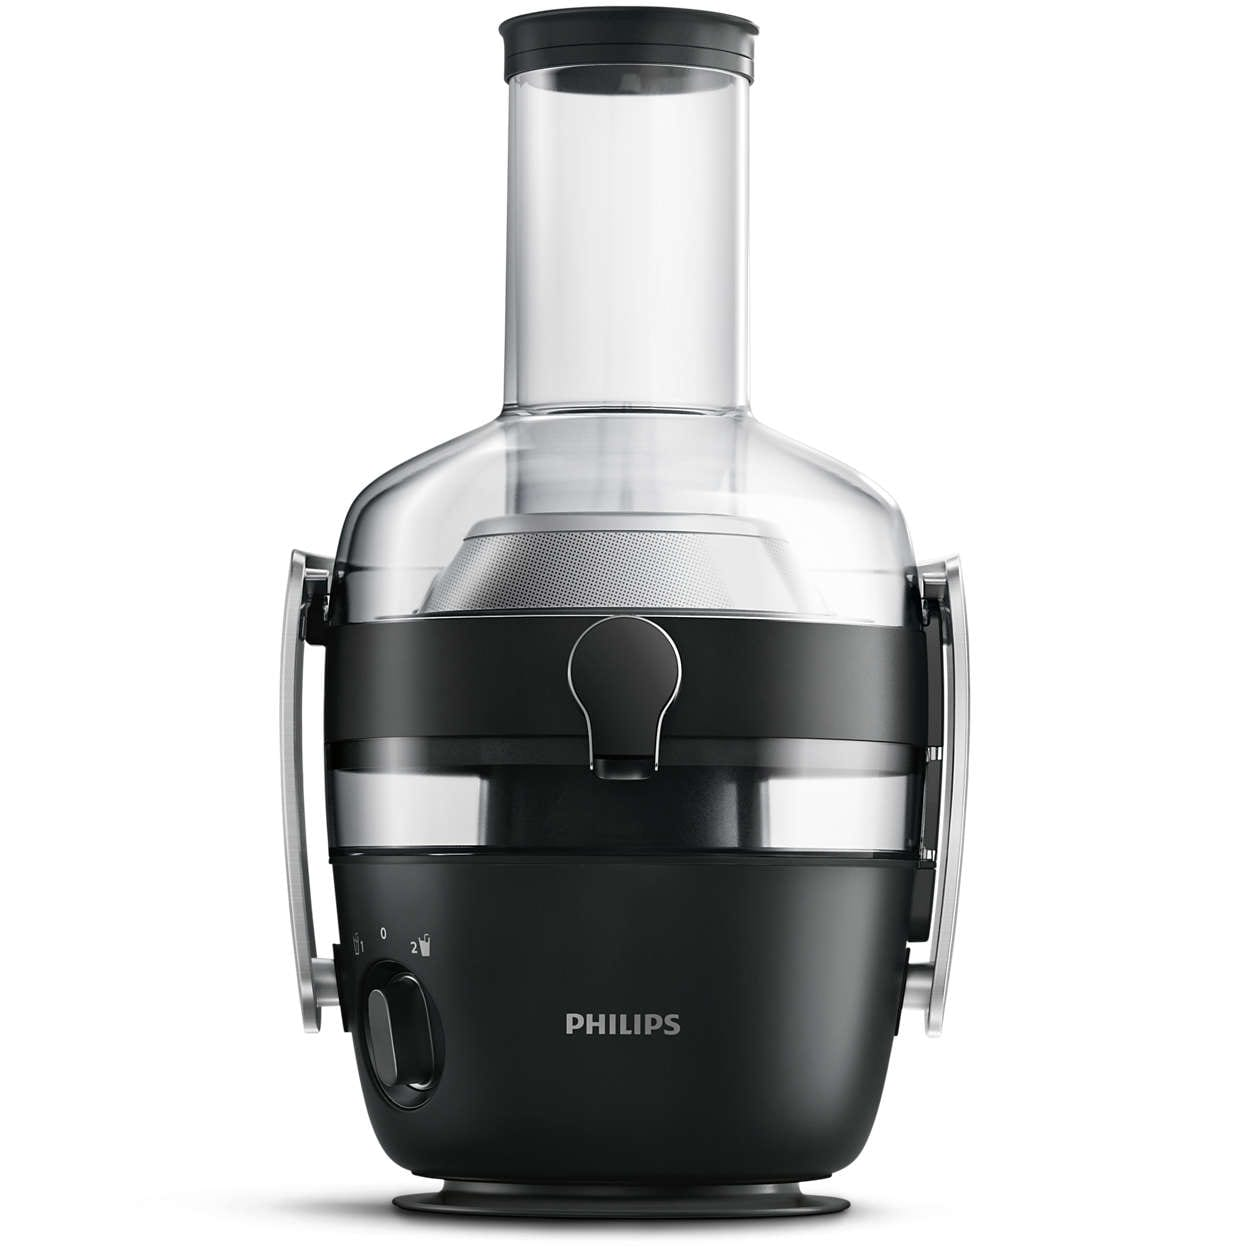 Philips sulu spiede